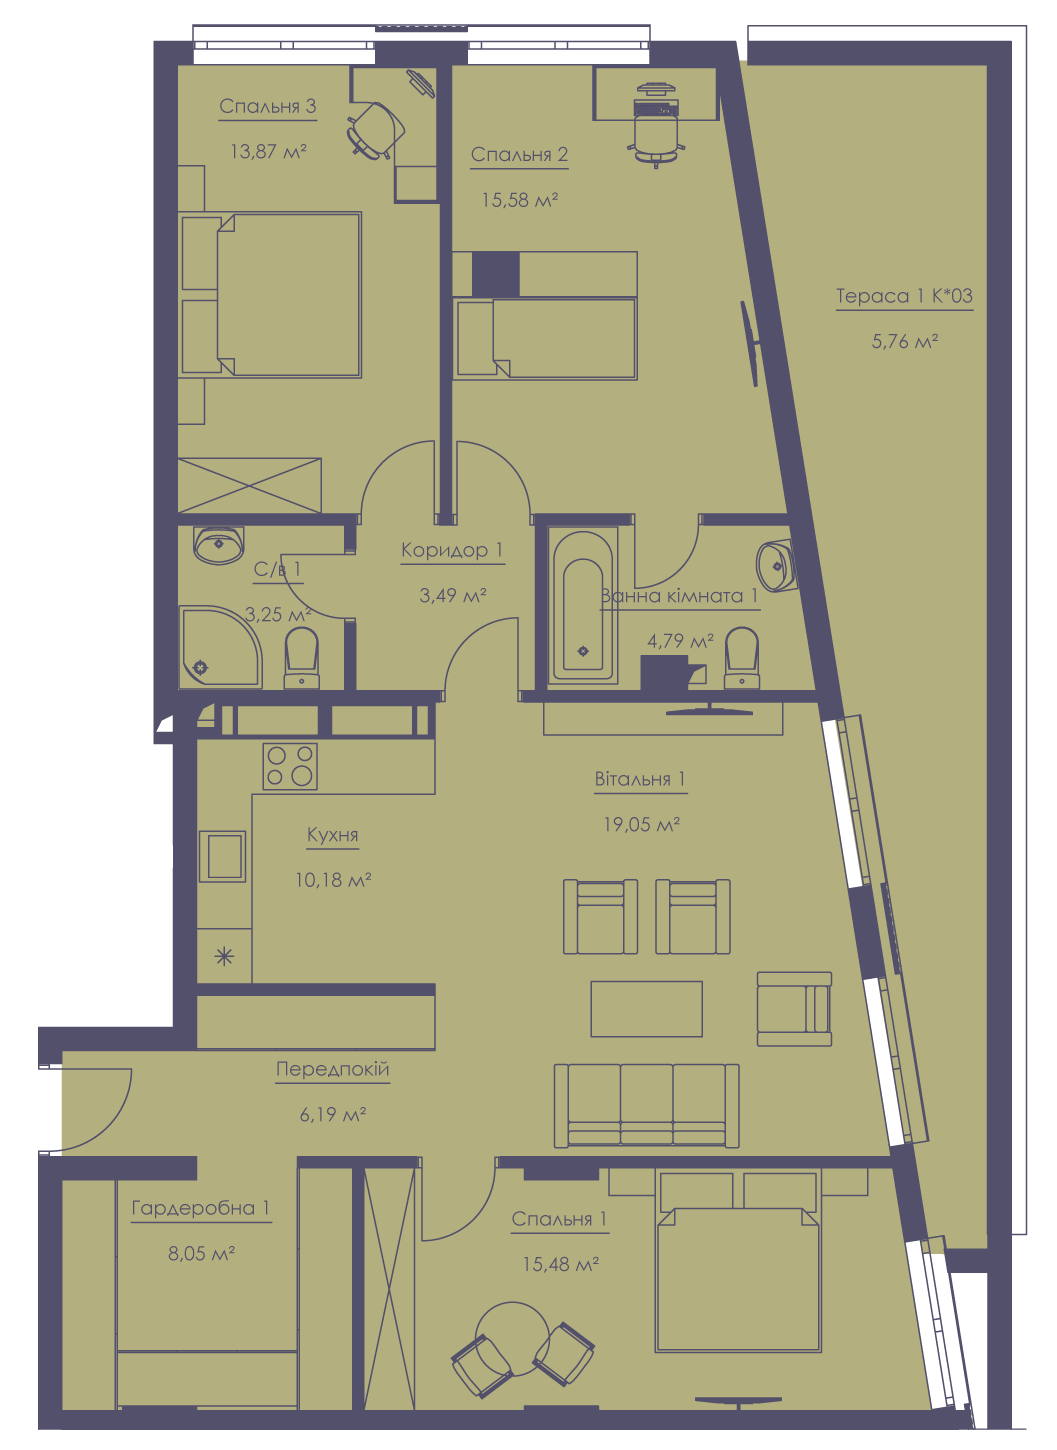 Apartment layout KV_100_4g_1_1_11-1